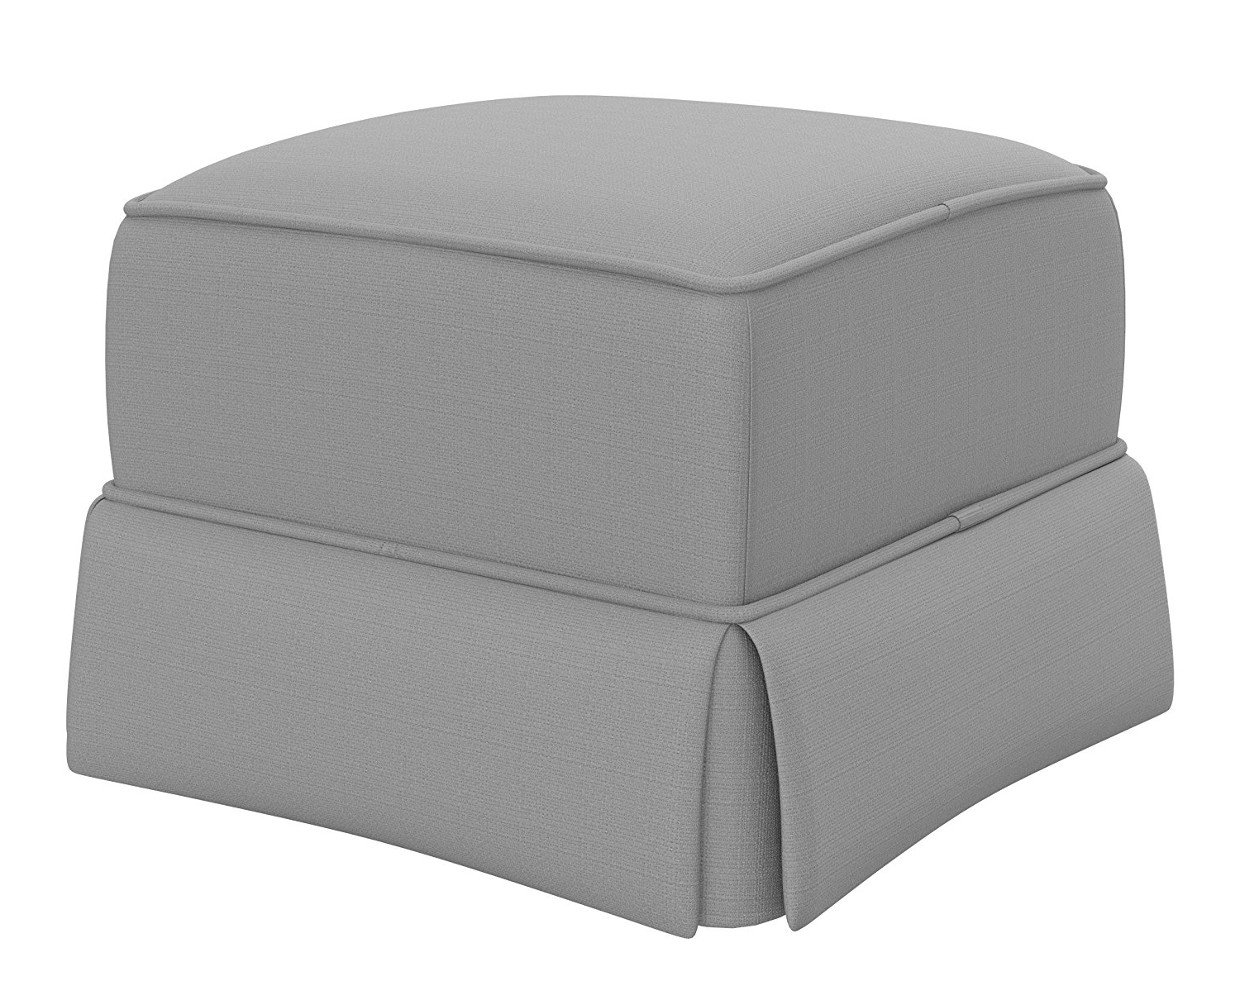 Grey Upholstered Ottoman Modern Square Cube Glider Seat Metal Base and Wood Frame Fabric Covered For Kids Room , Bedroom Or Living Room & eBook by Easy&FunDeals